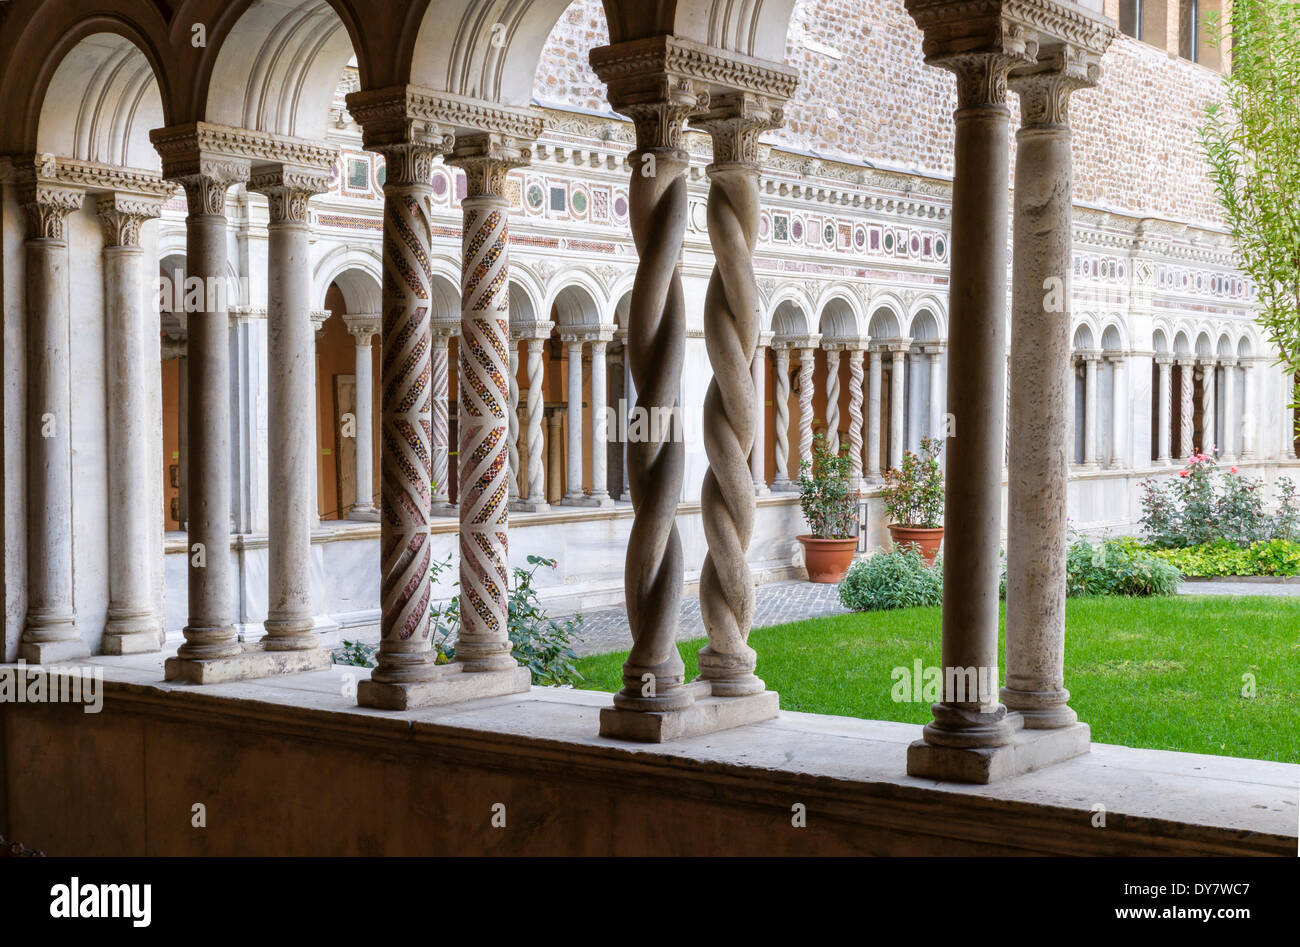 Cosmatesque ornaments, masterpiece by marble artist Vassalletto, cloister of the Basilica of St. John Lateran - Stock Image